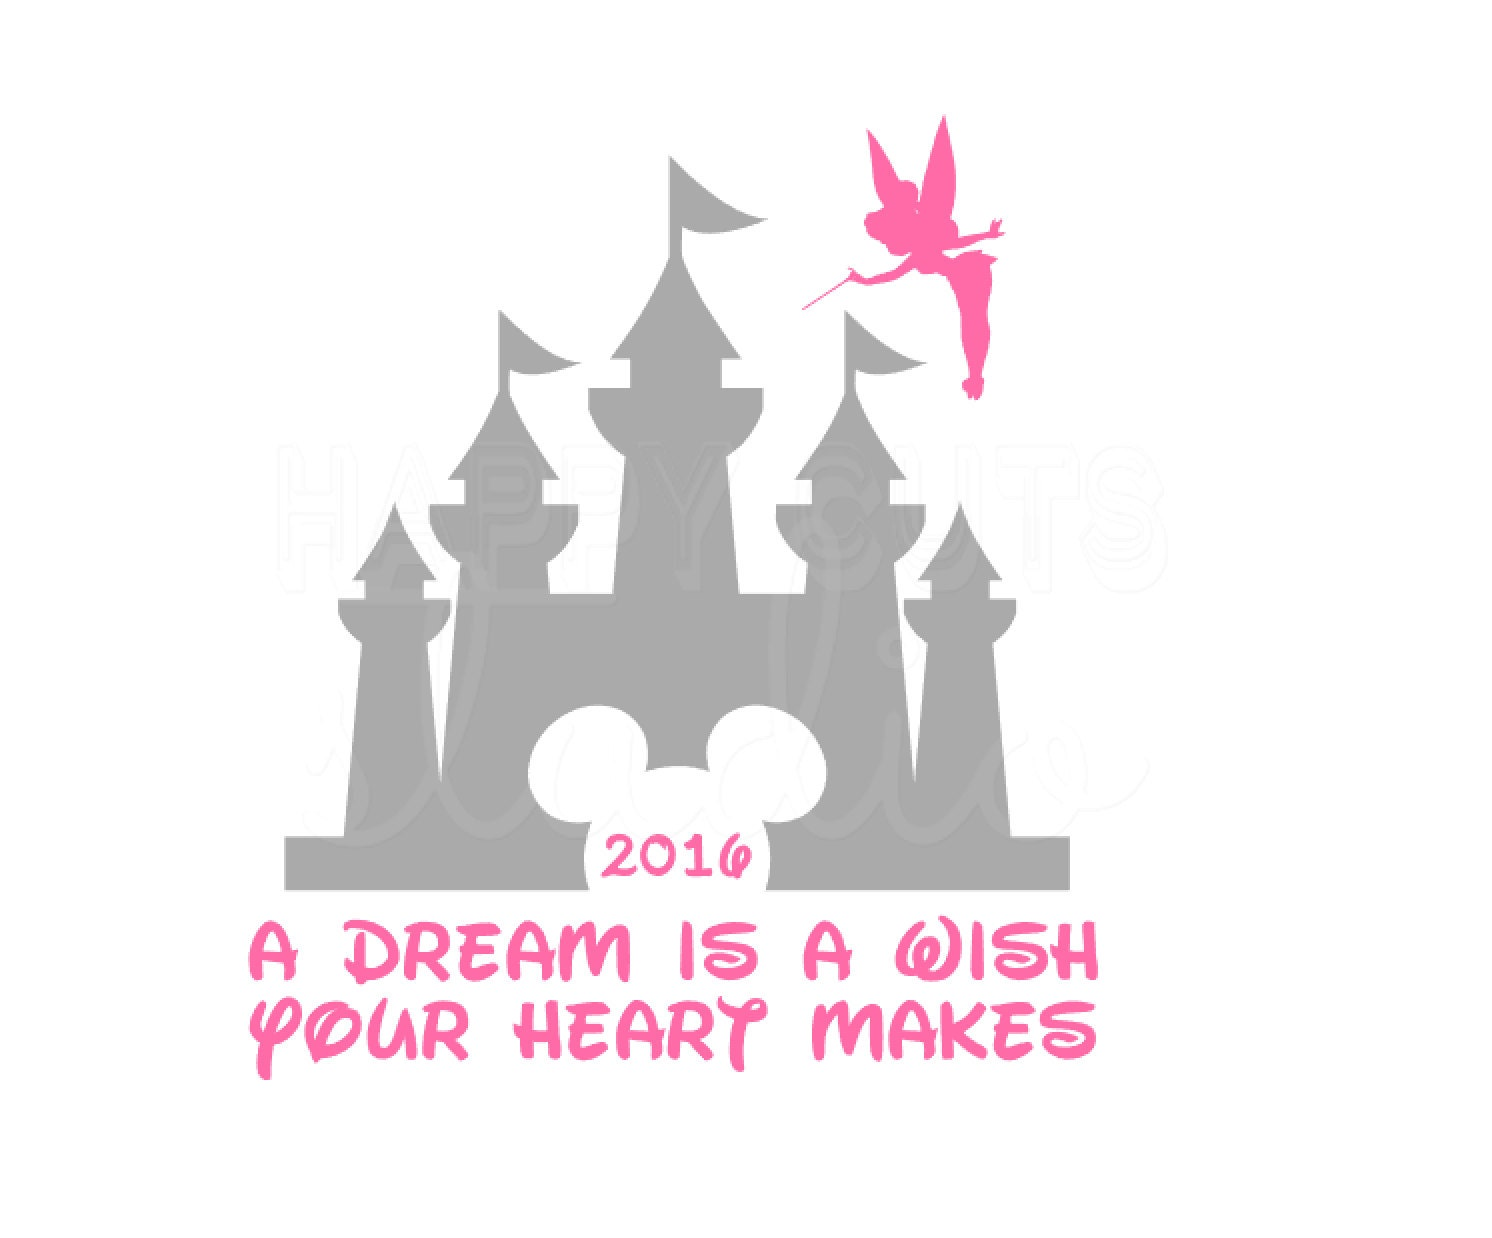 A Dream is a Wish Your Heart Makes Disney Dream Tinkerbell A Dream Is A Wish Your Heart Makes Shirt